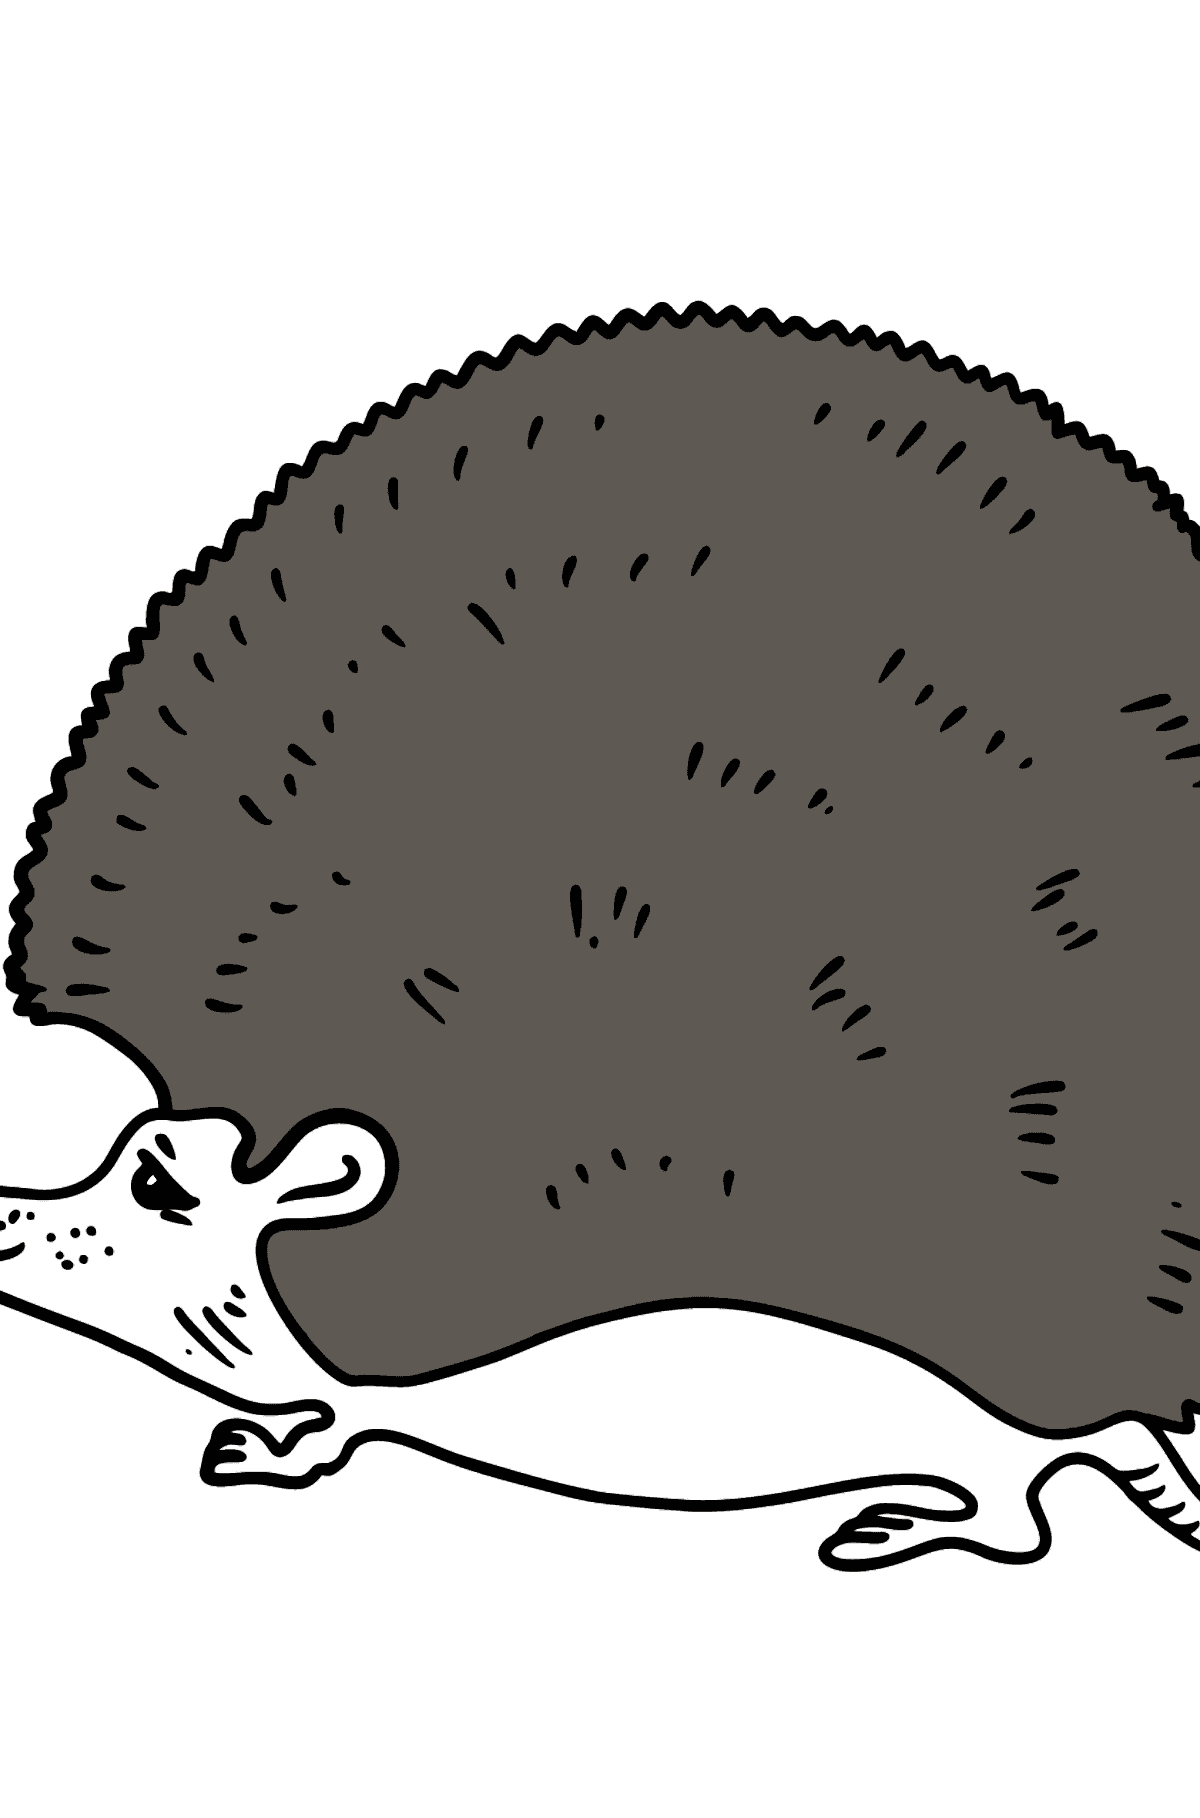 Hedgehog coloring page - Coloring Pages for Kids